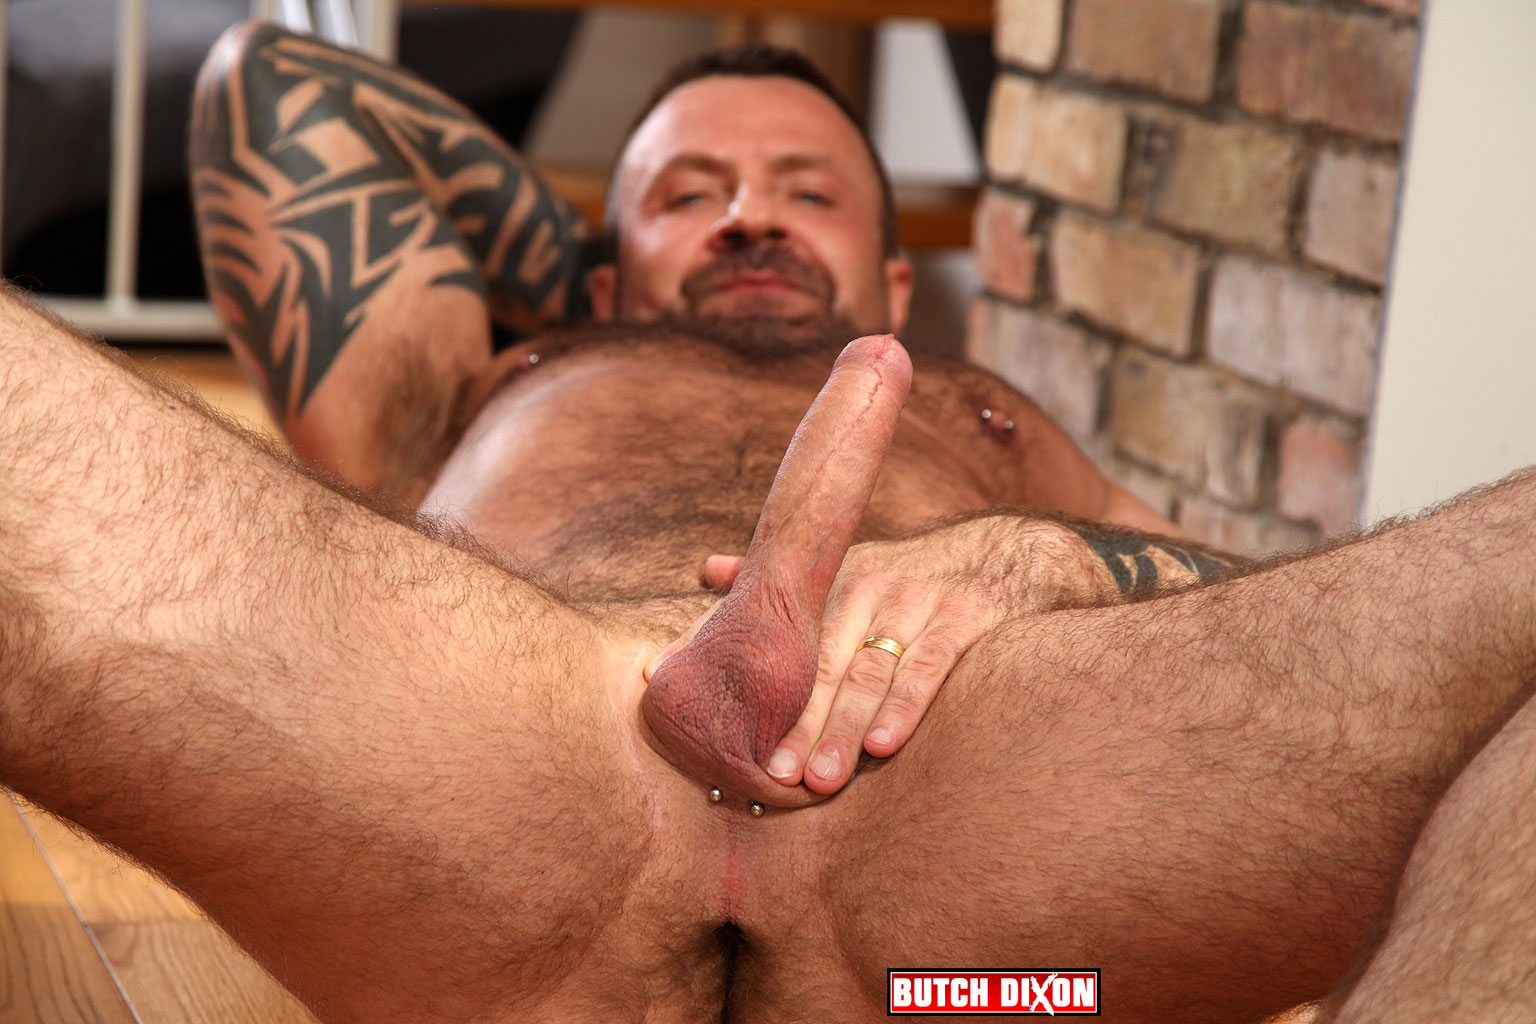 Butch-Dixon-Marc-Angelo-Muscle-Bear-Masturbating-Big-Uncut-Cock-Amateur-Gay-Porn-04 Hairy Canadian Muscle Daddy Bear Strokes His Big Uncut Cock